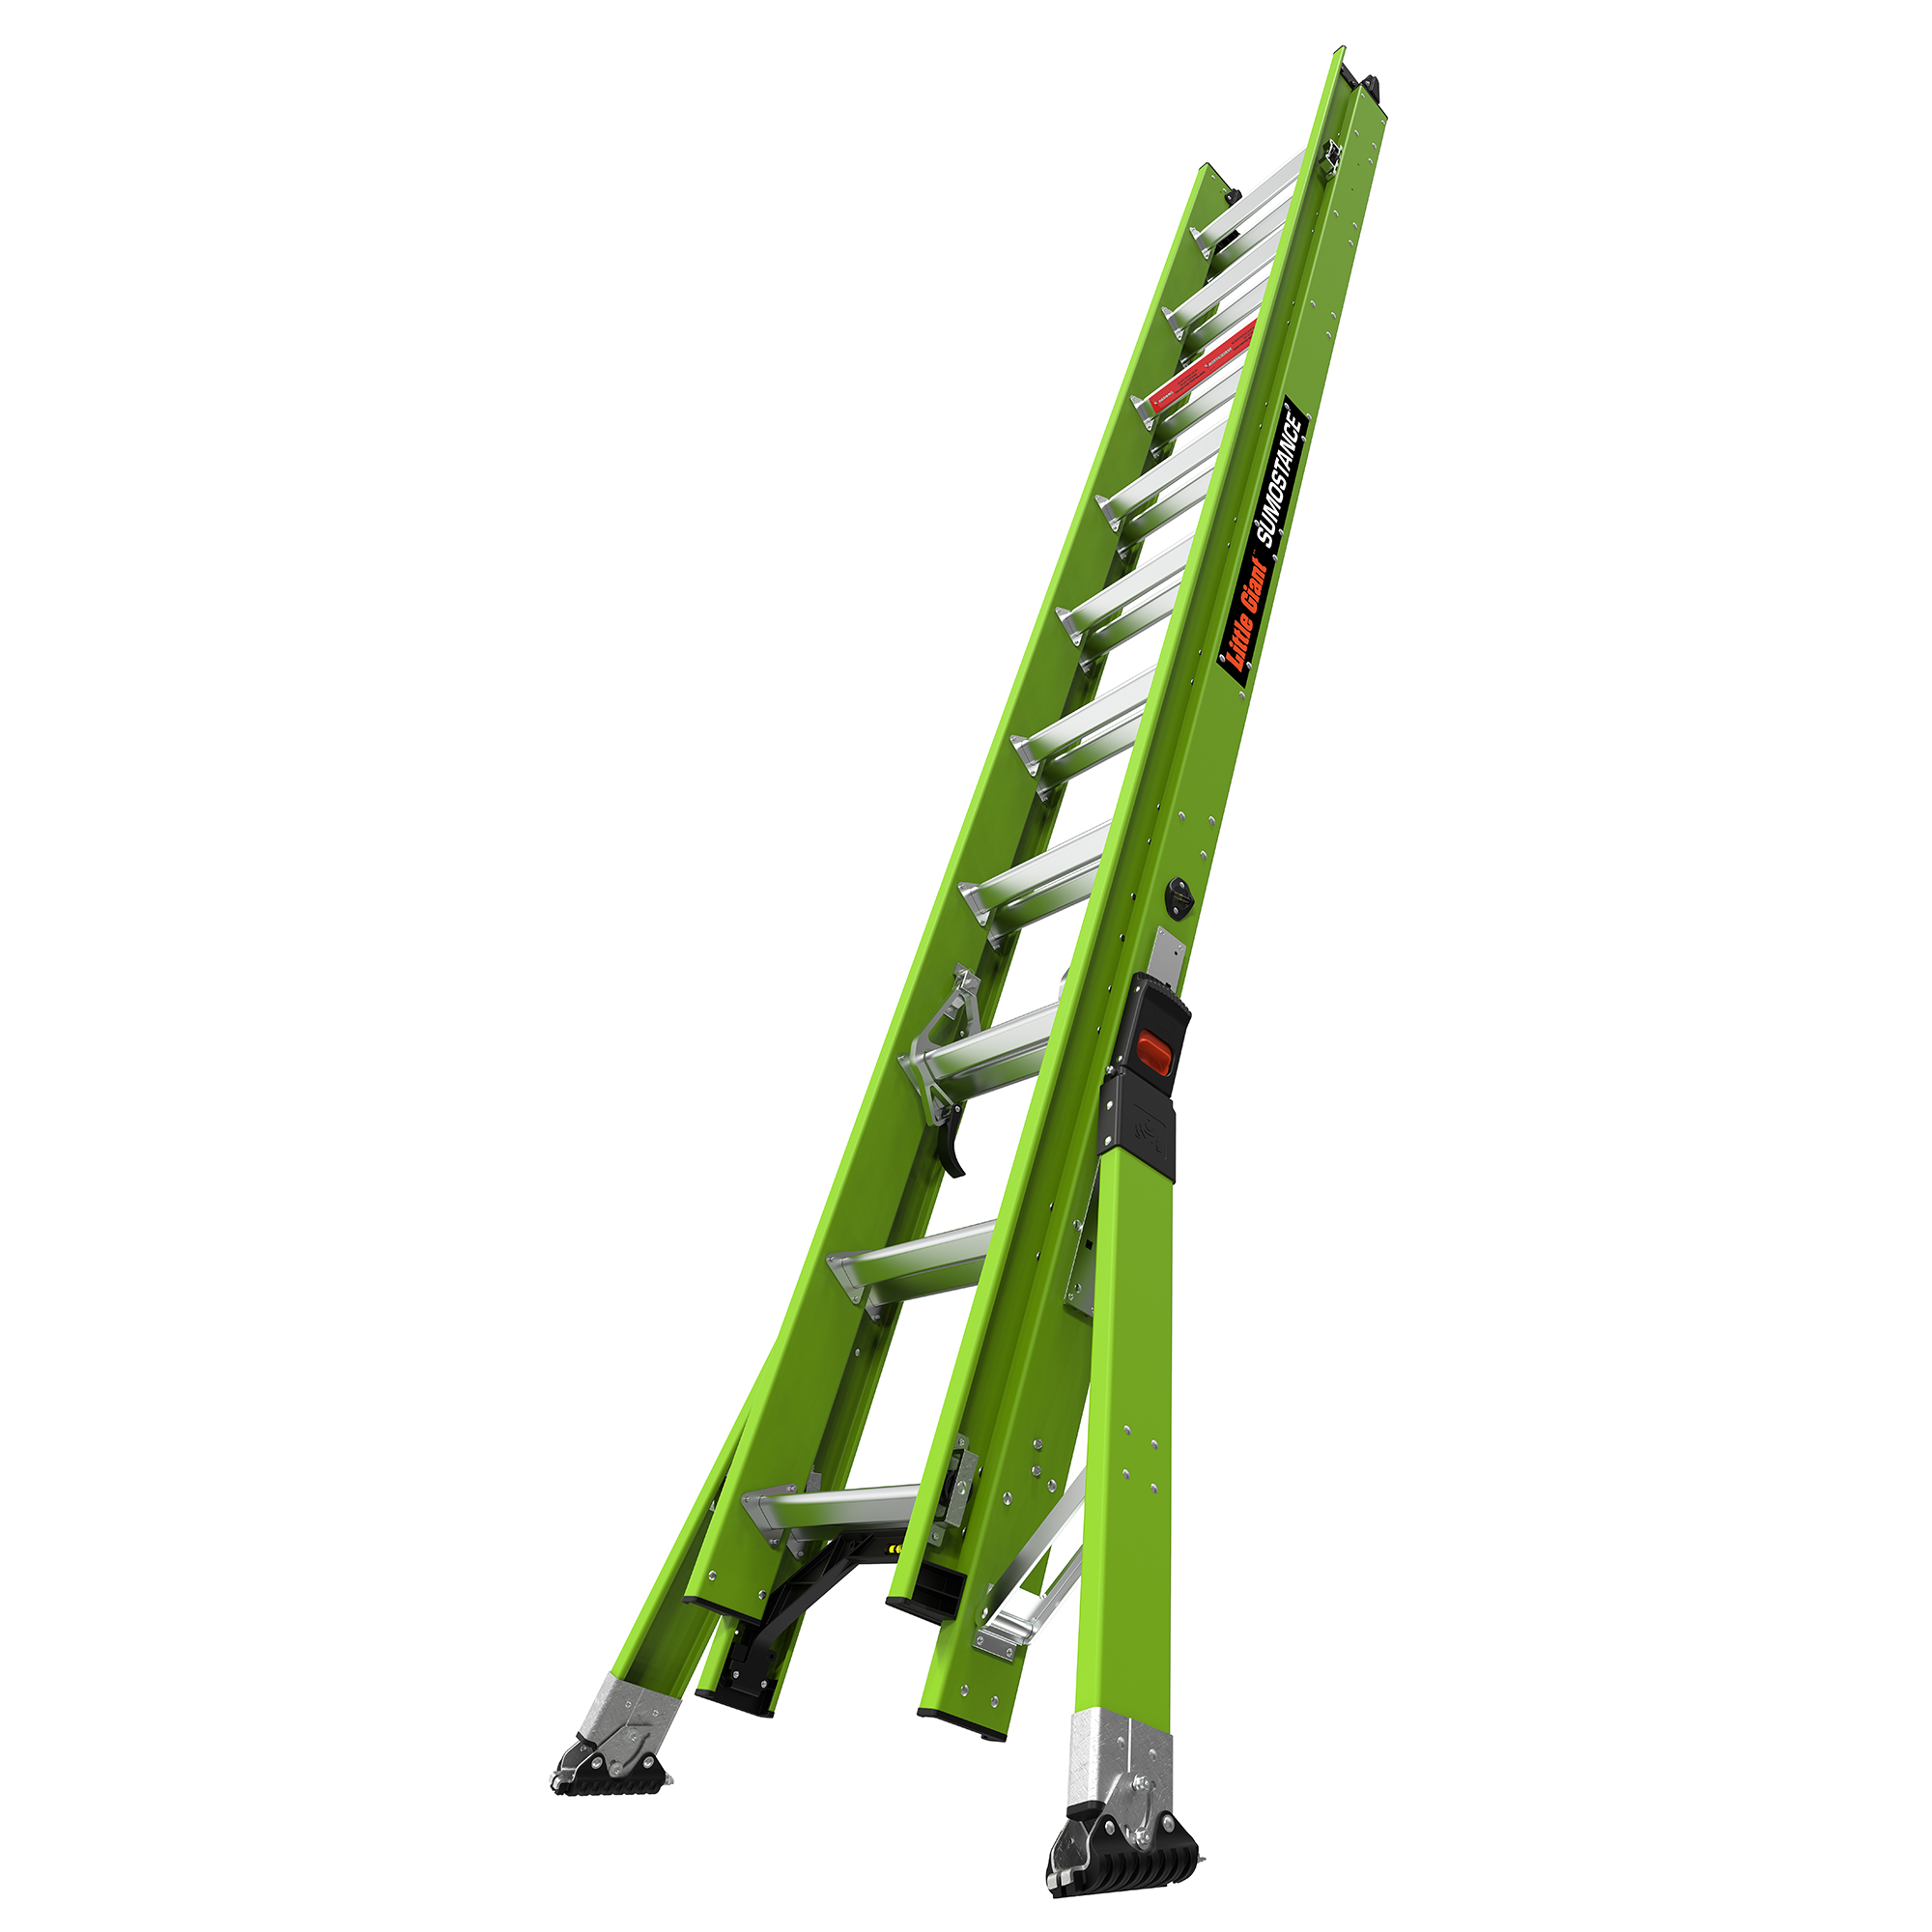 20 Ft. HyperLite SumoStance Fiberglass Extension Ladder - Type IAA